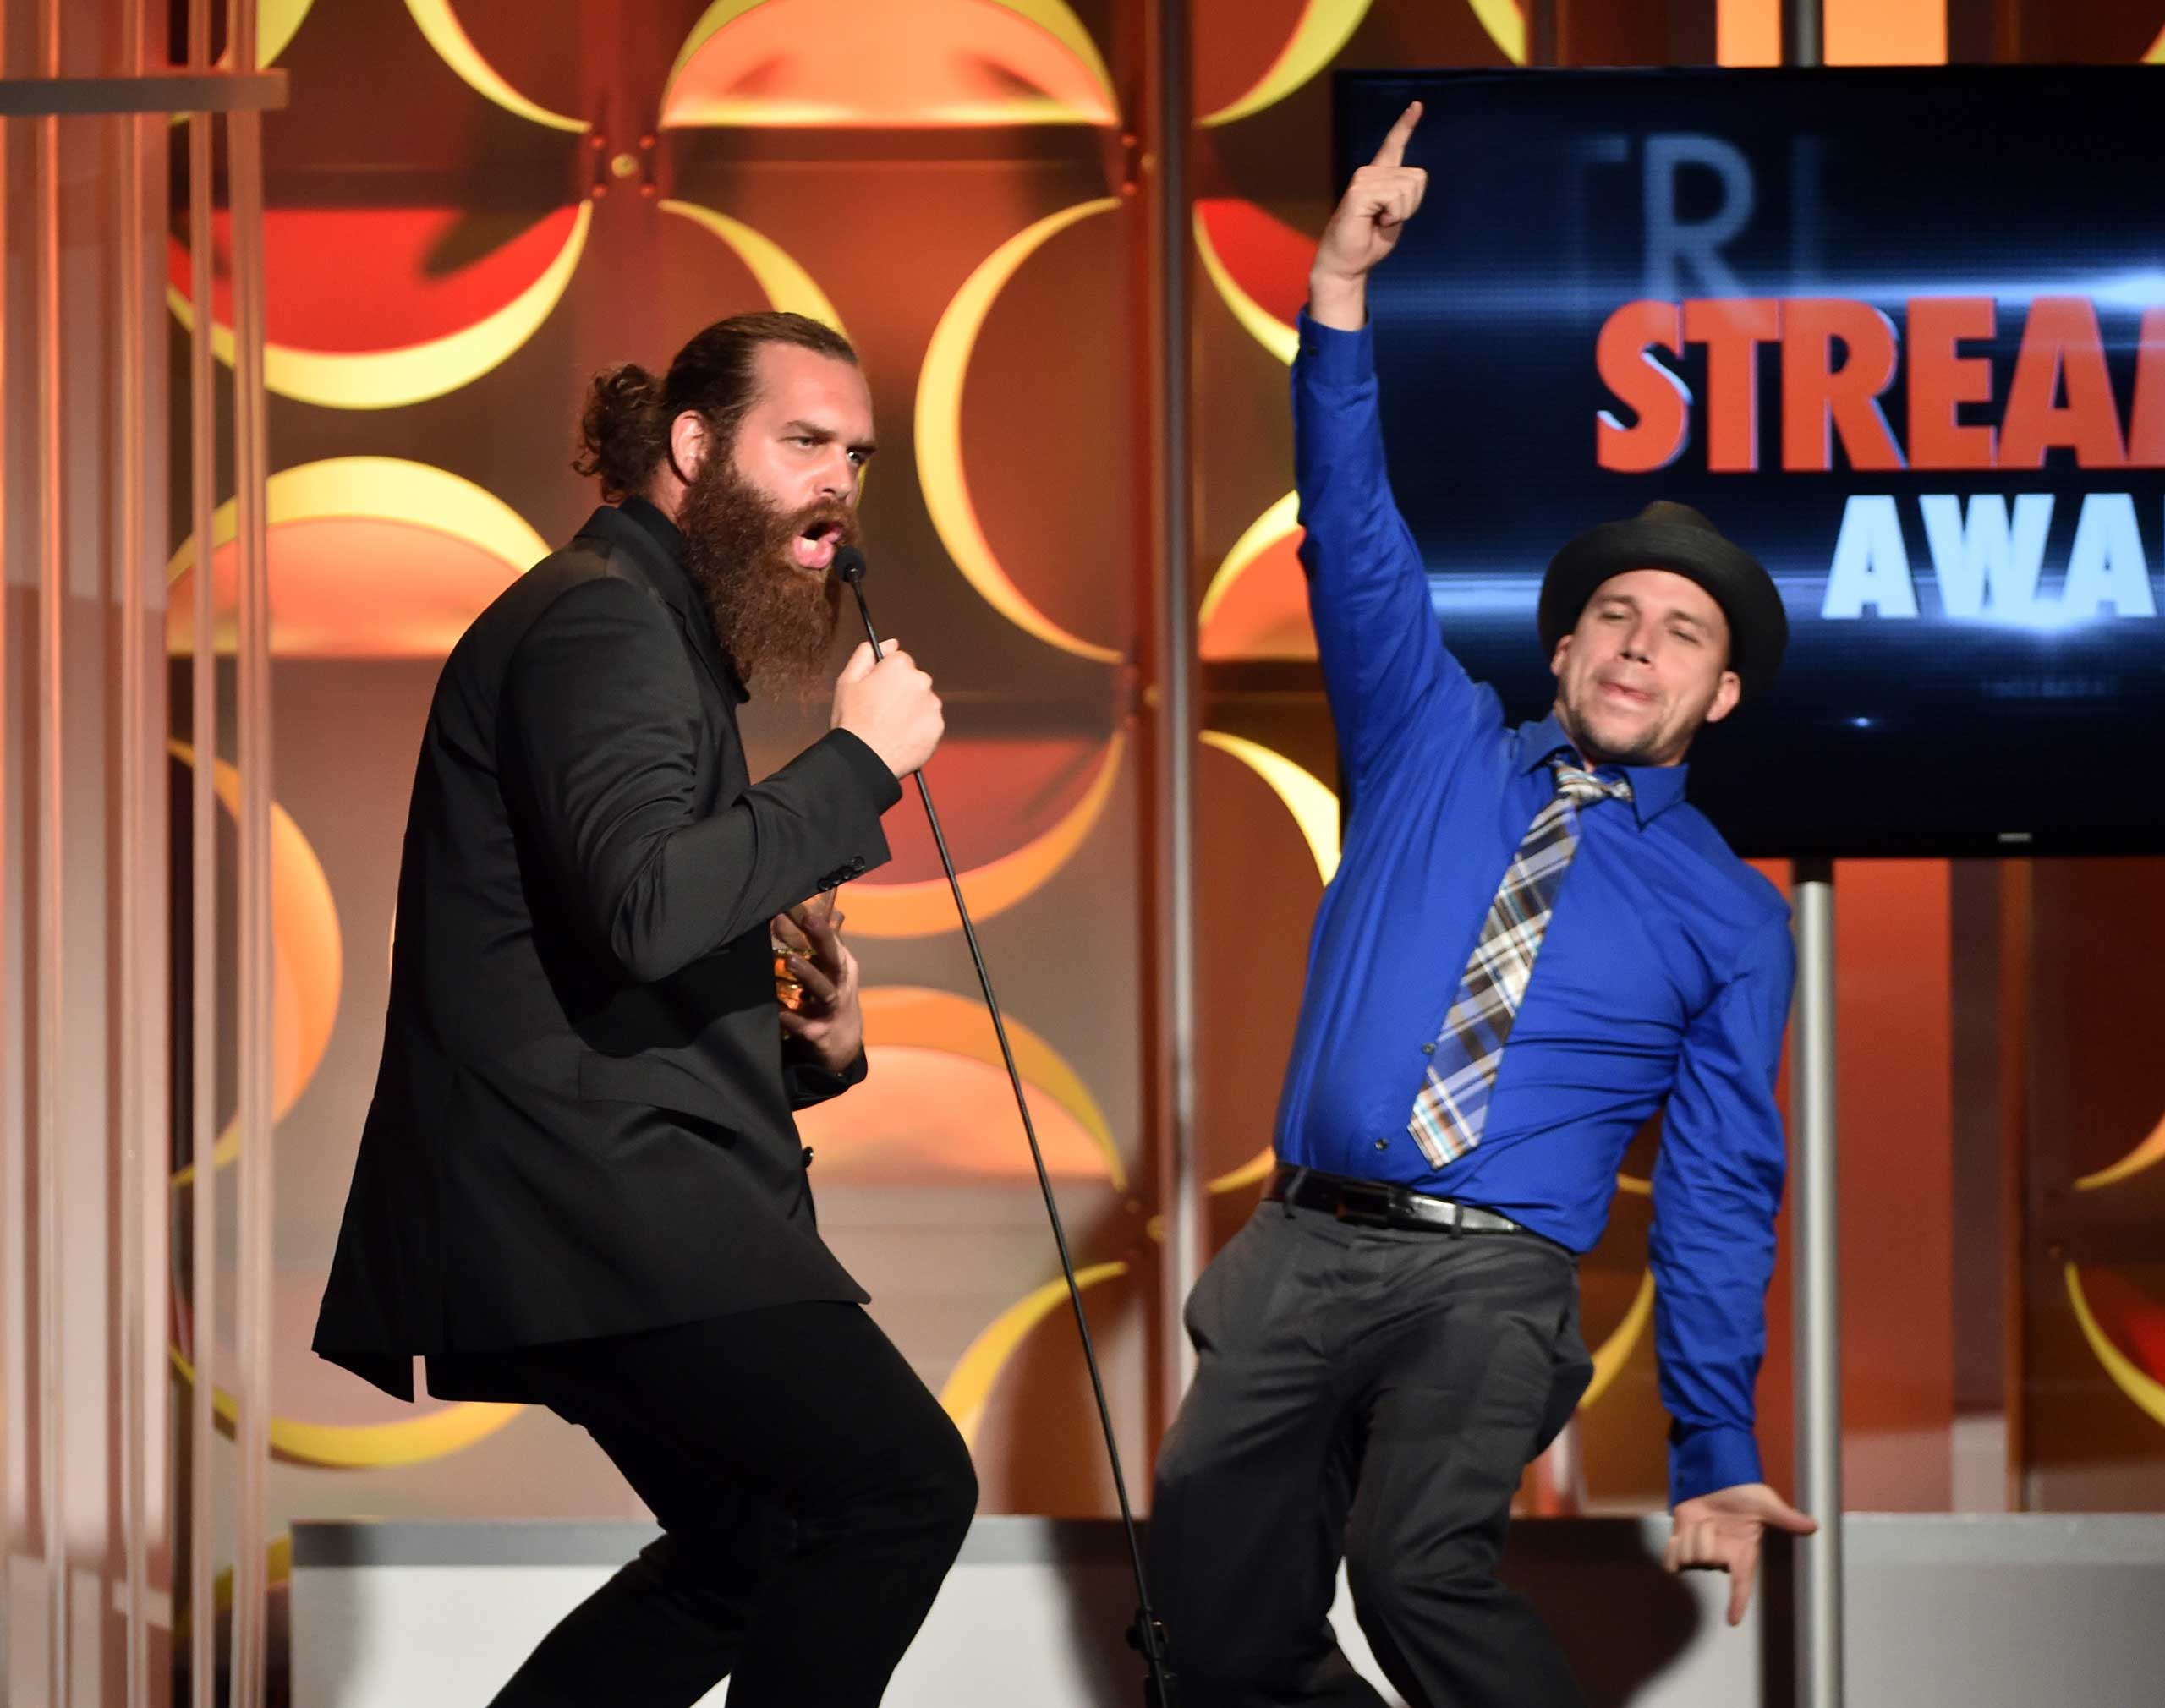 Internet personalities Harley Morenstein (L) and Lloyd Ahlquist speak at the 4th Annual Streamy Awards presented by Coca-Cola in Beverly Hills, Calif. on Sept. 7, 2014.